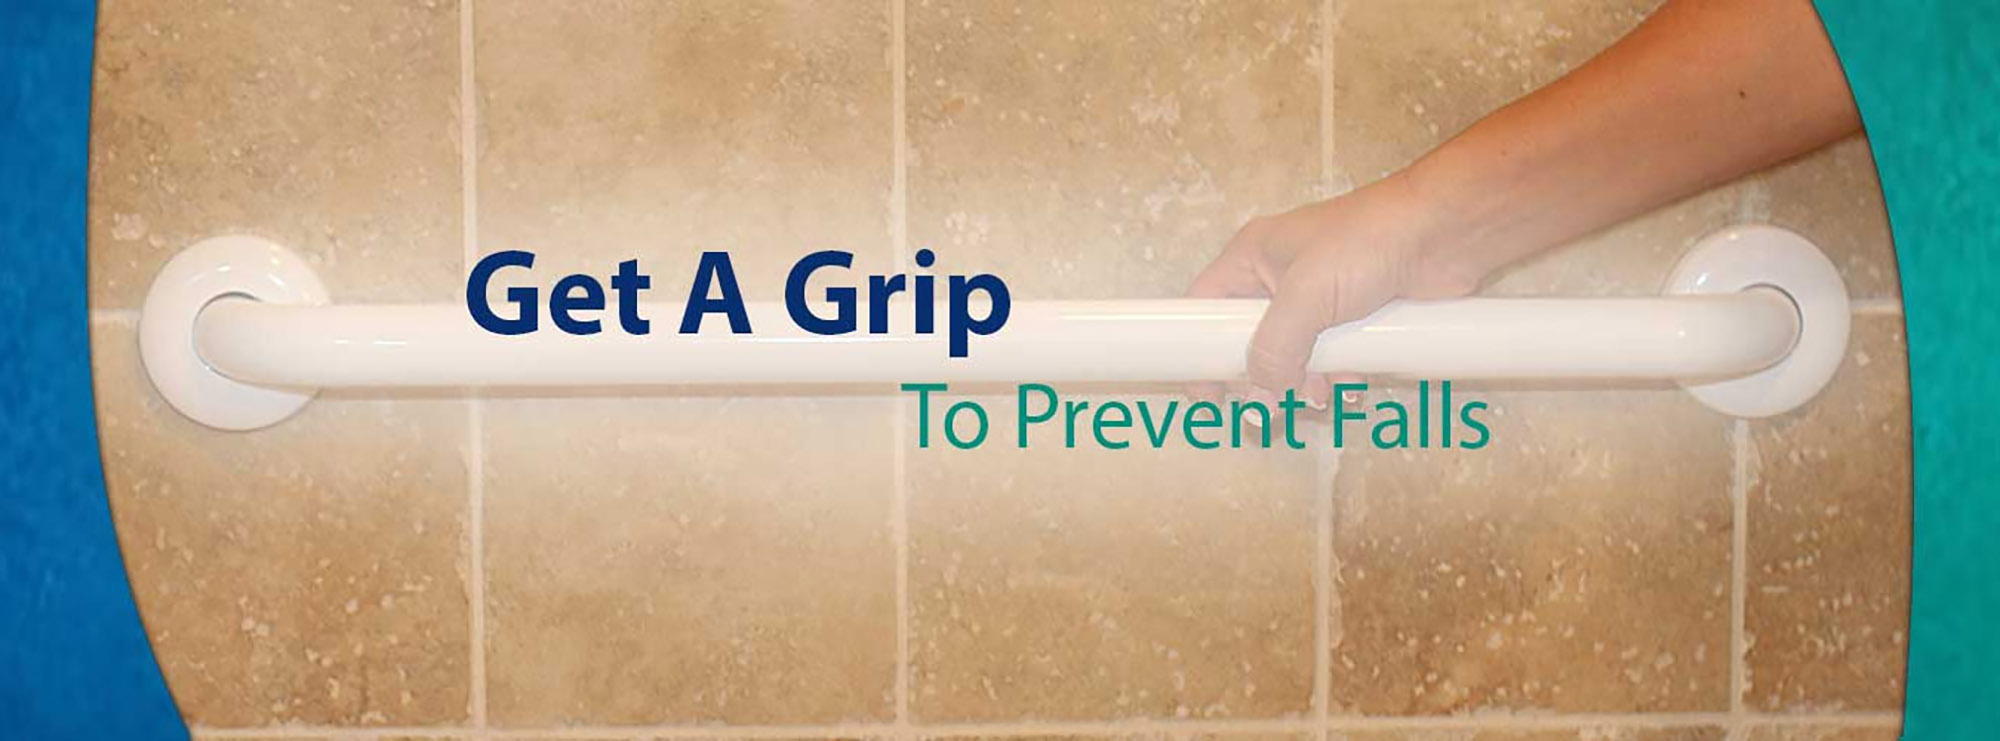 Shower Grip: Get a Grip to Prevent Falls